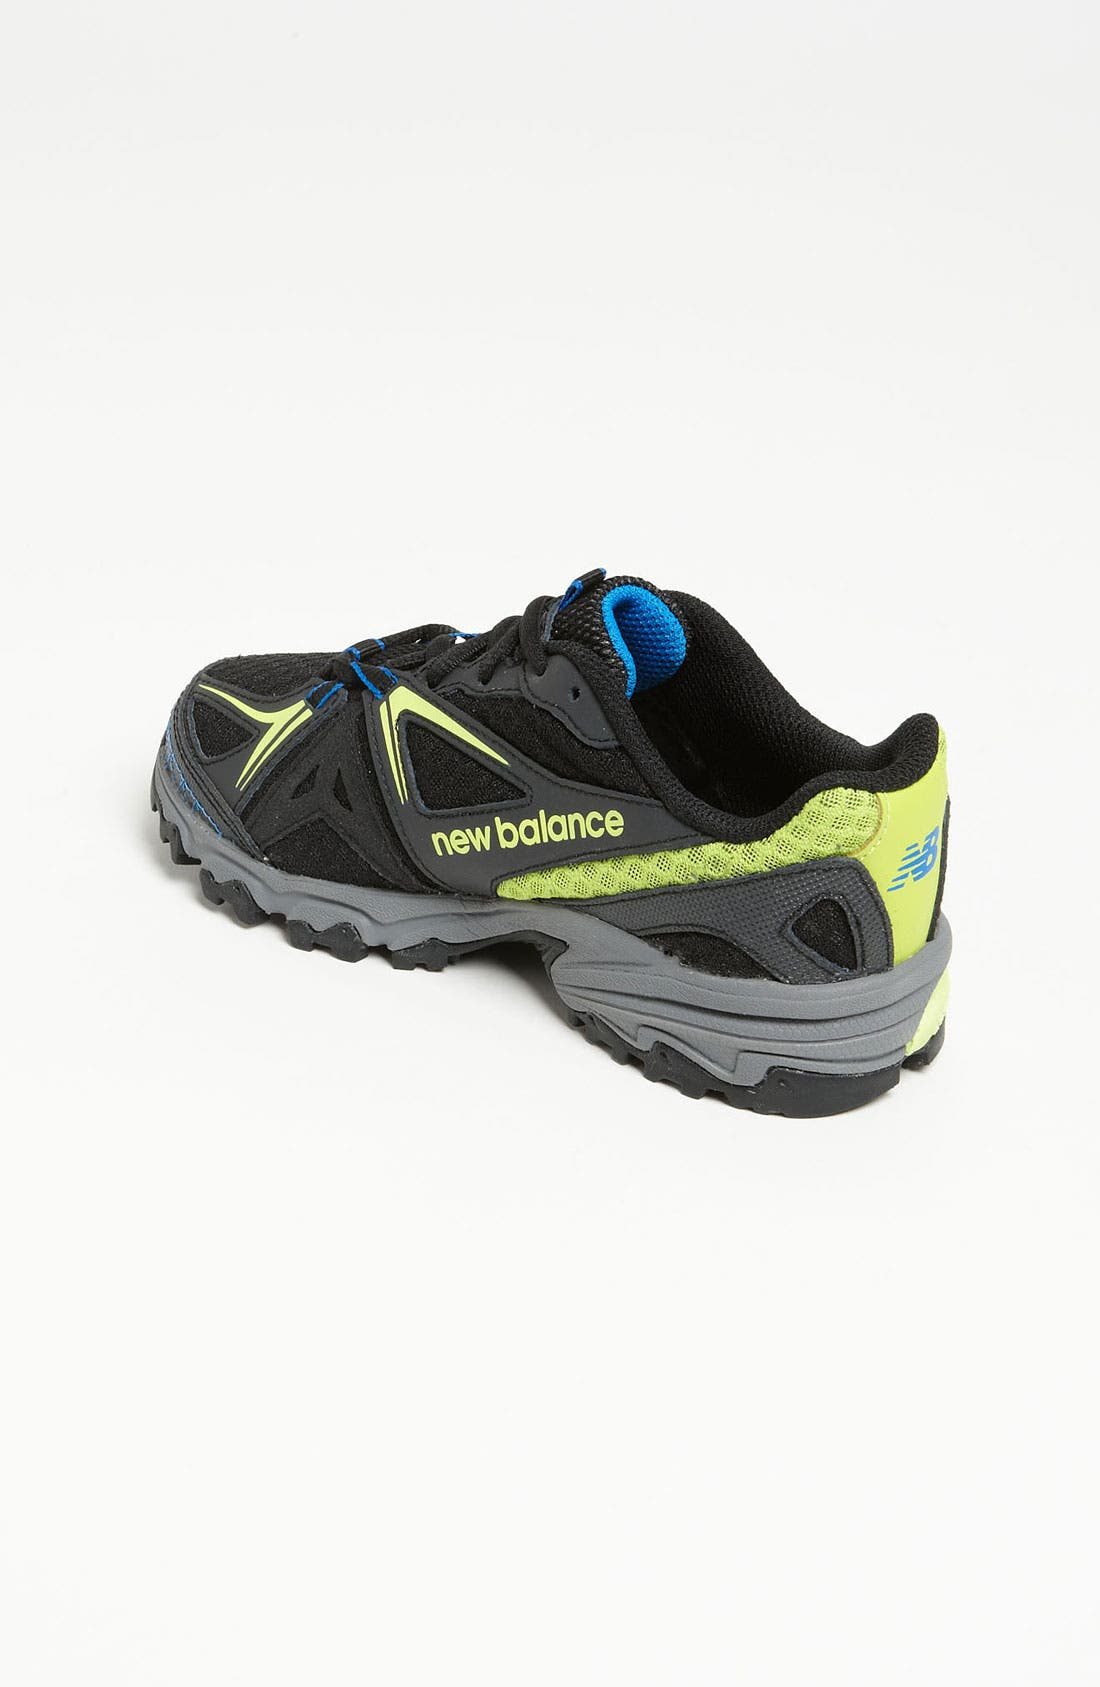 Alternate Image 2  - New Balance 'Takedown 610' Trail Running Shoe (Toddler, Little Kid & Big Kid)